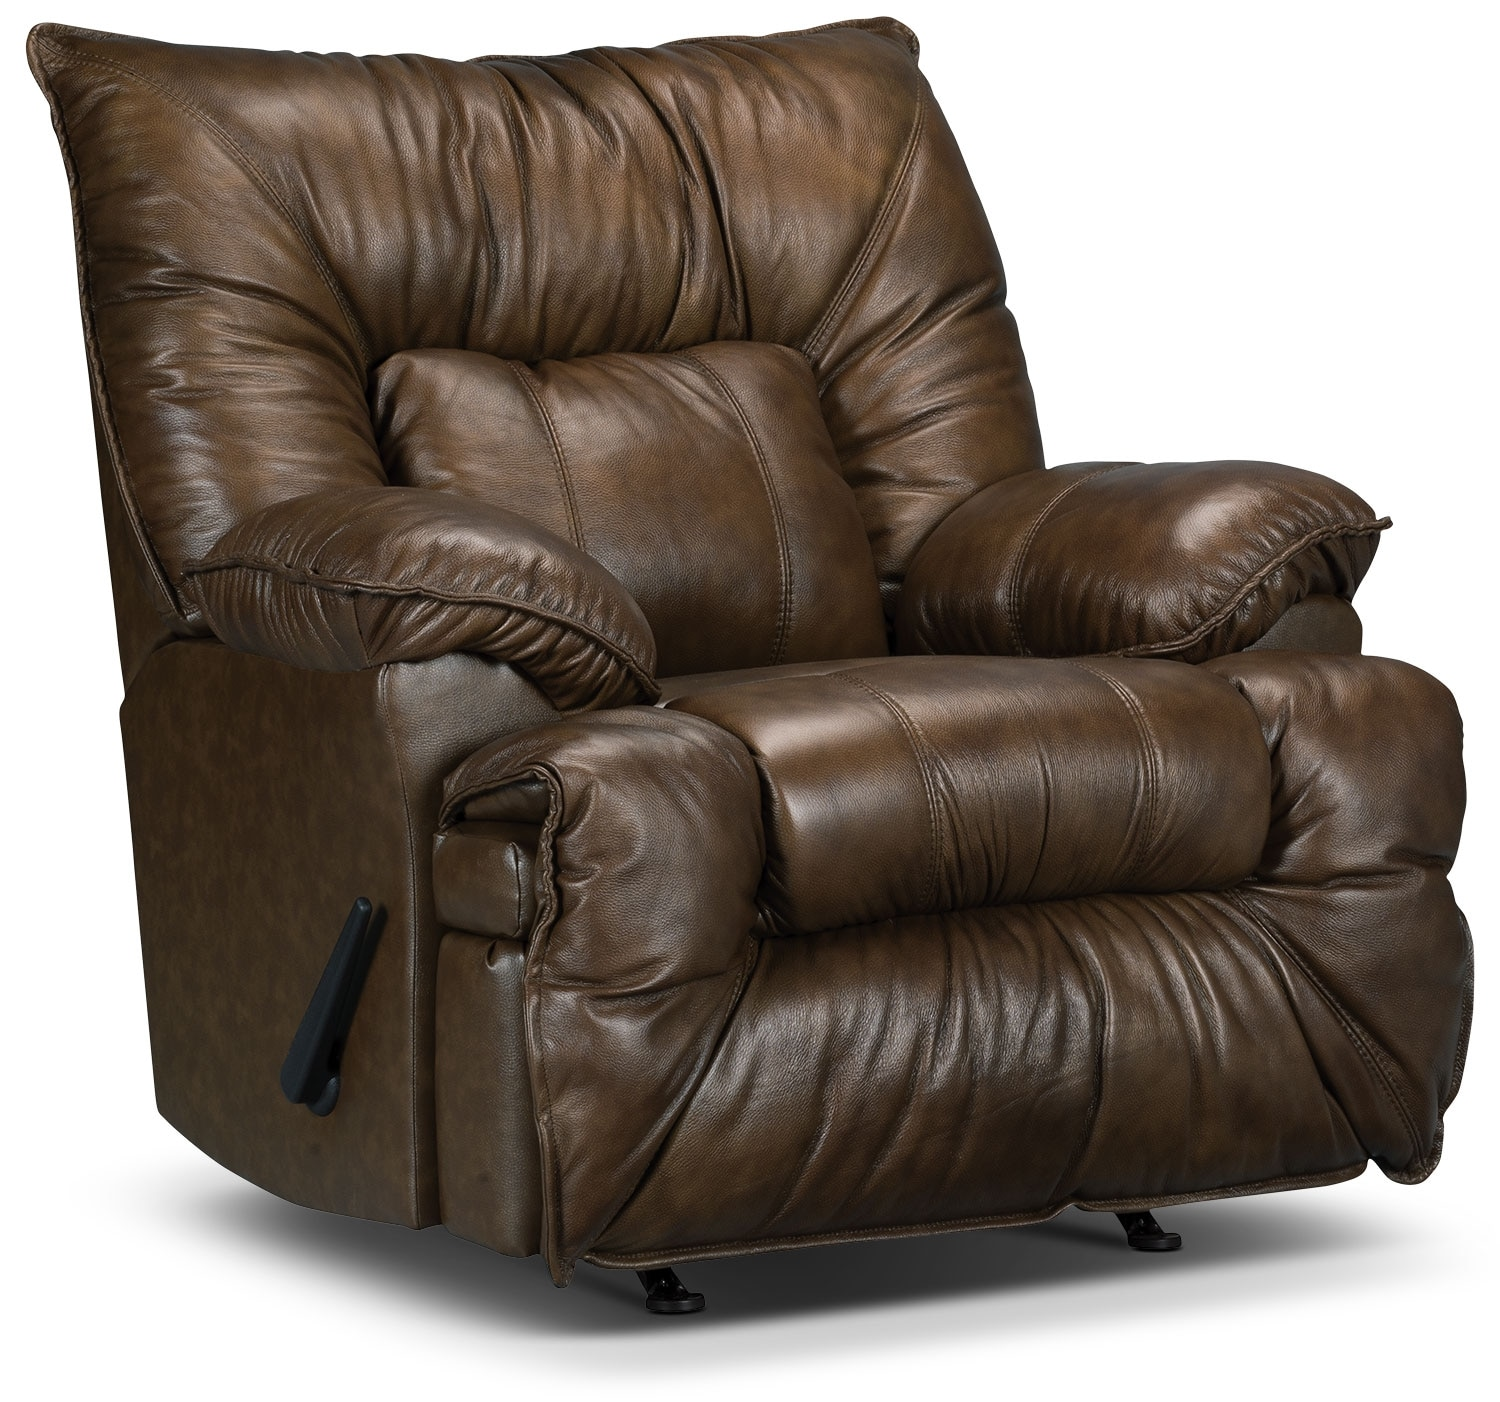 Designed2B Recliner 7726 Leather-Look Fabric Rocking Chair- Walnut